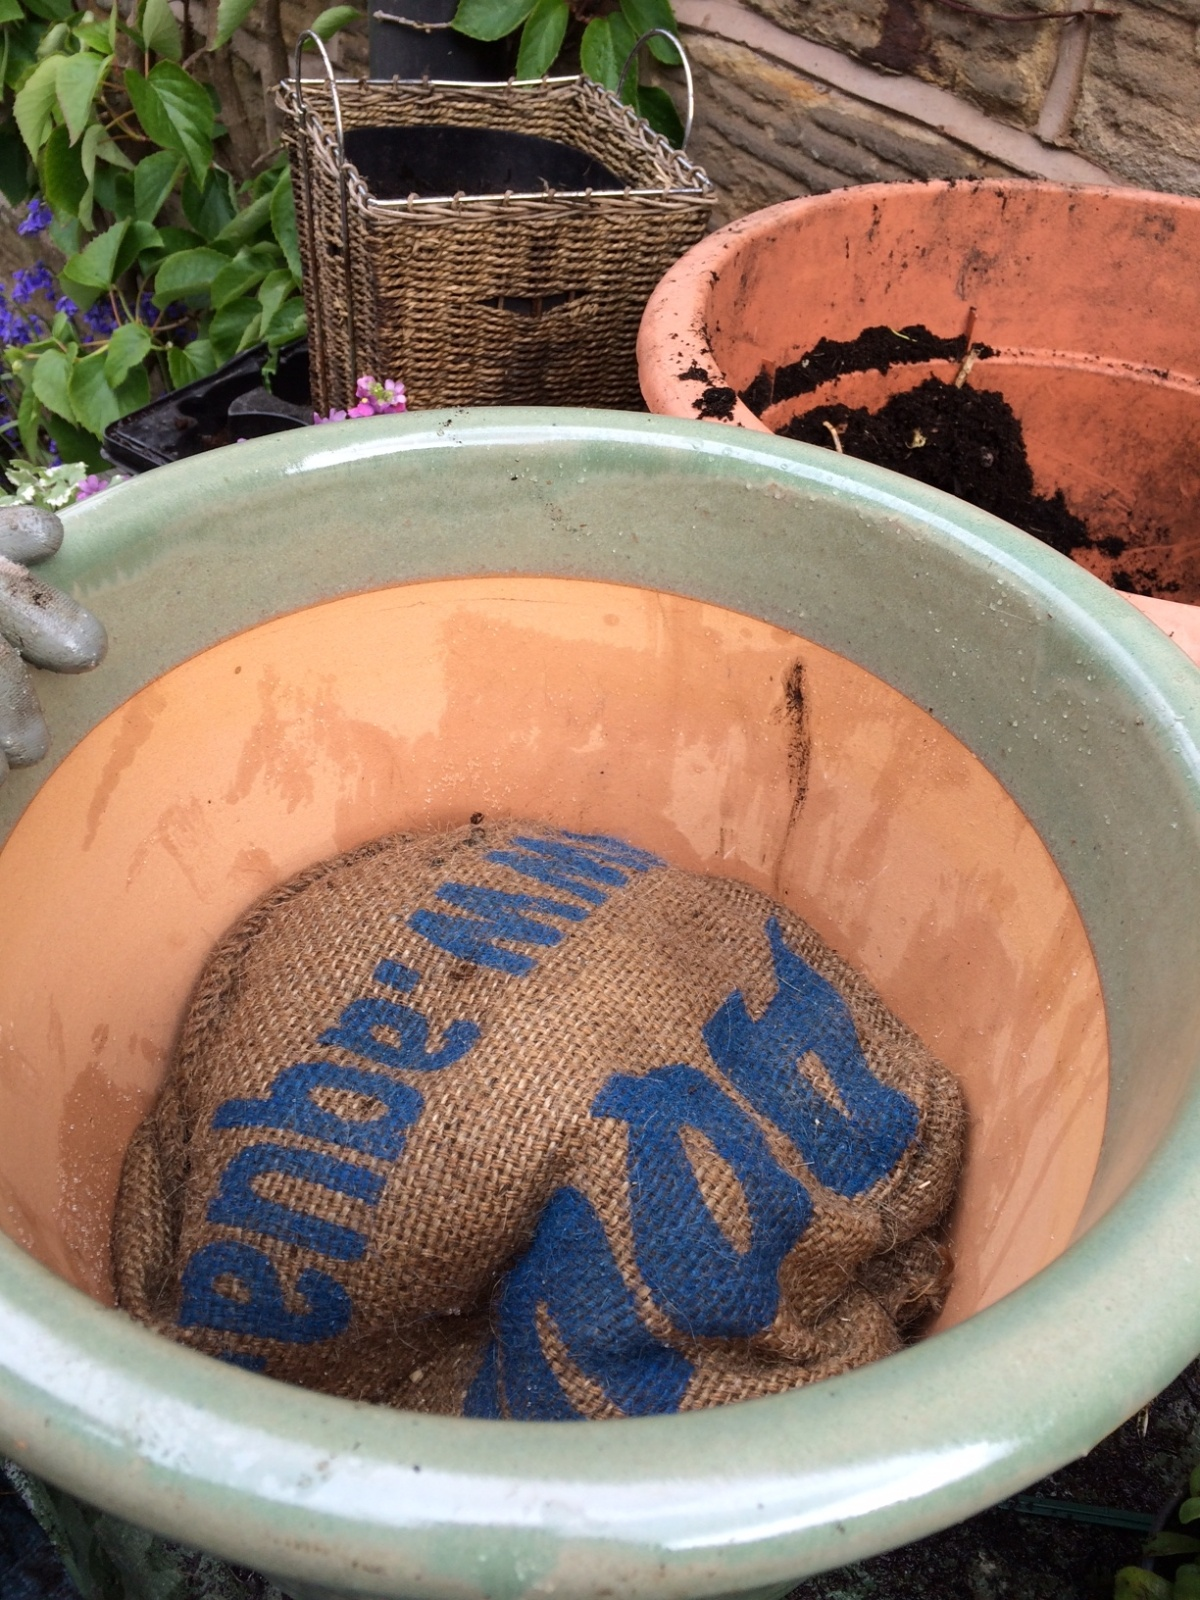 a photo of aqua-sac in a plant pot showing how greening works